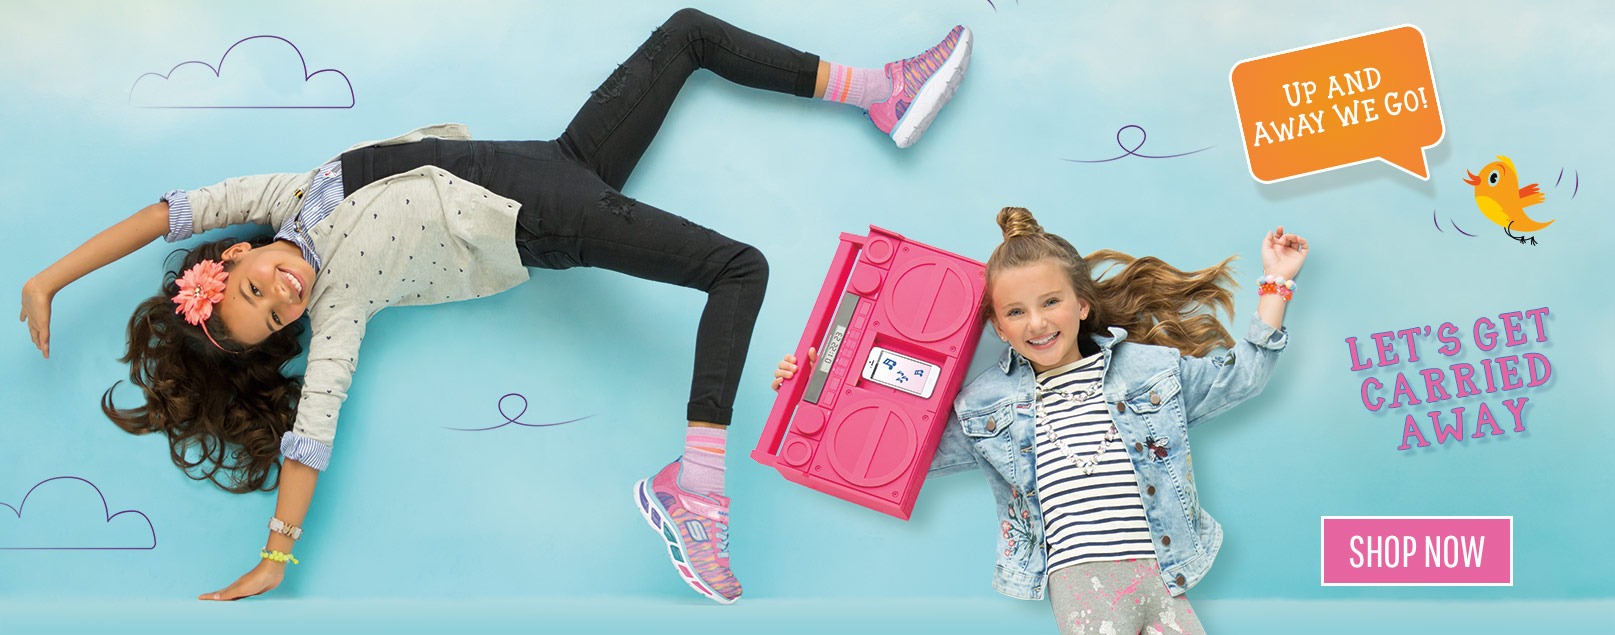 Turn up the volume on Fall style with Skechers Girls' shoes including Twinkle Toes, Energy Lights and Memory Foam sneakers!